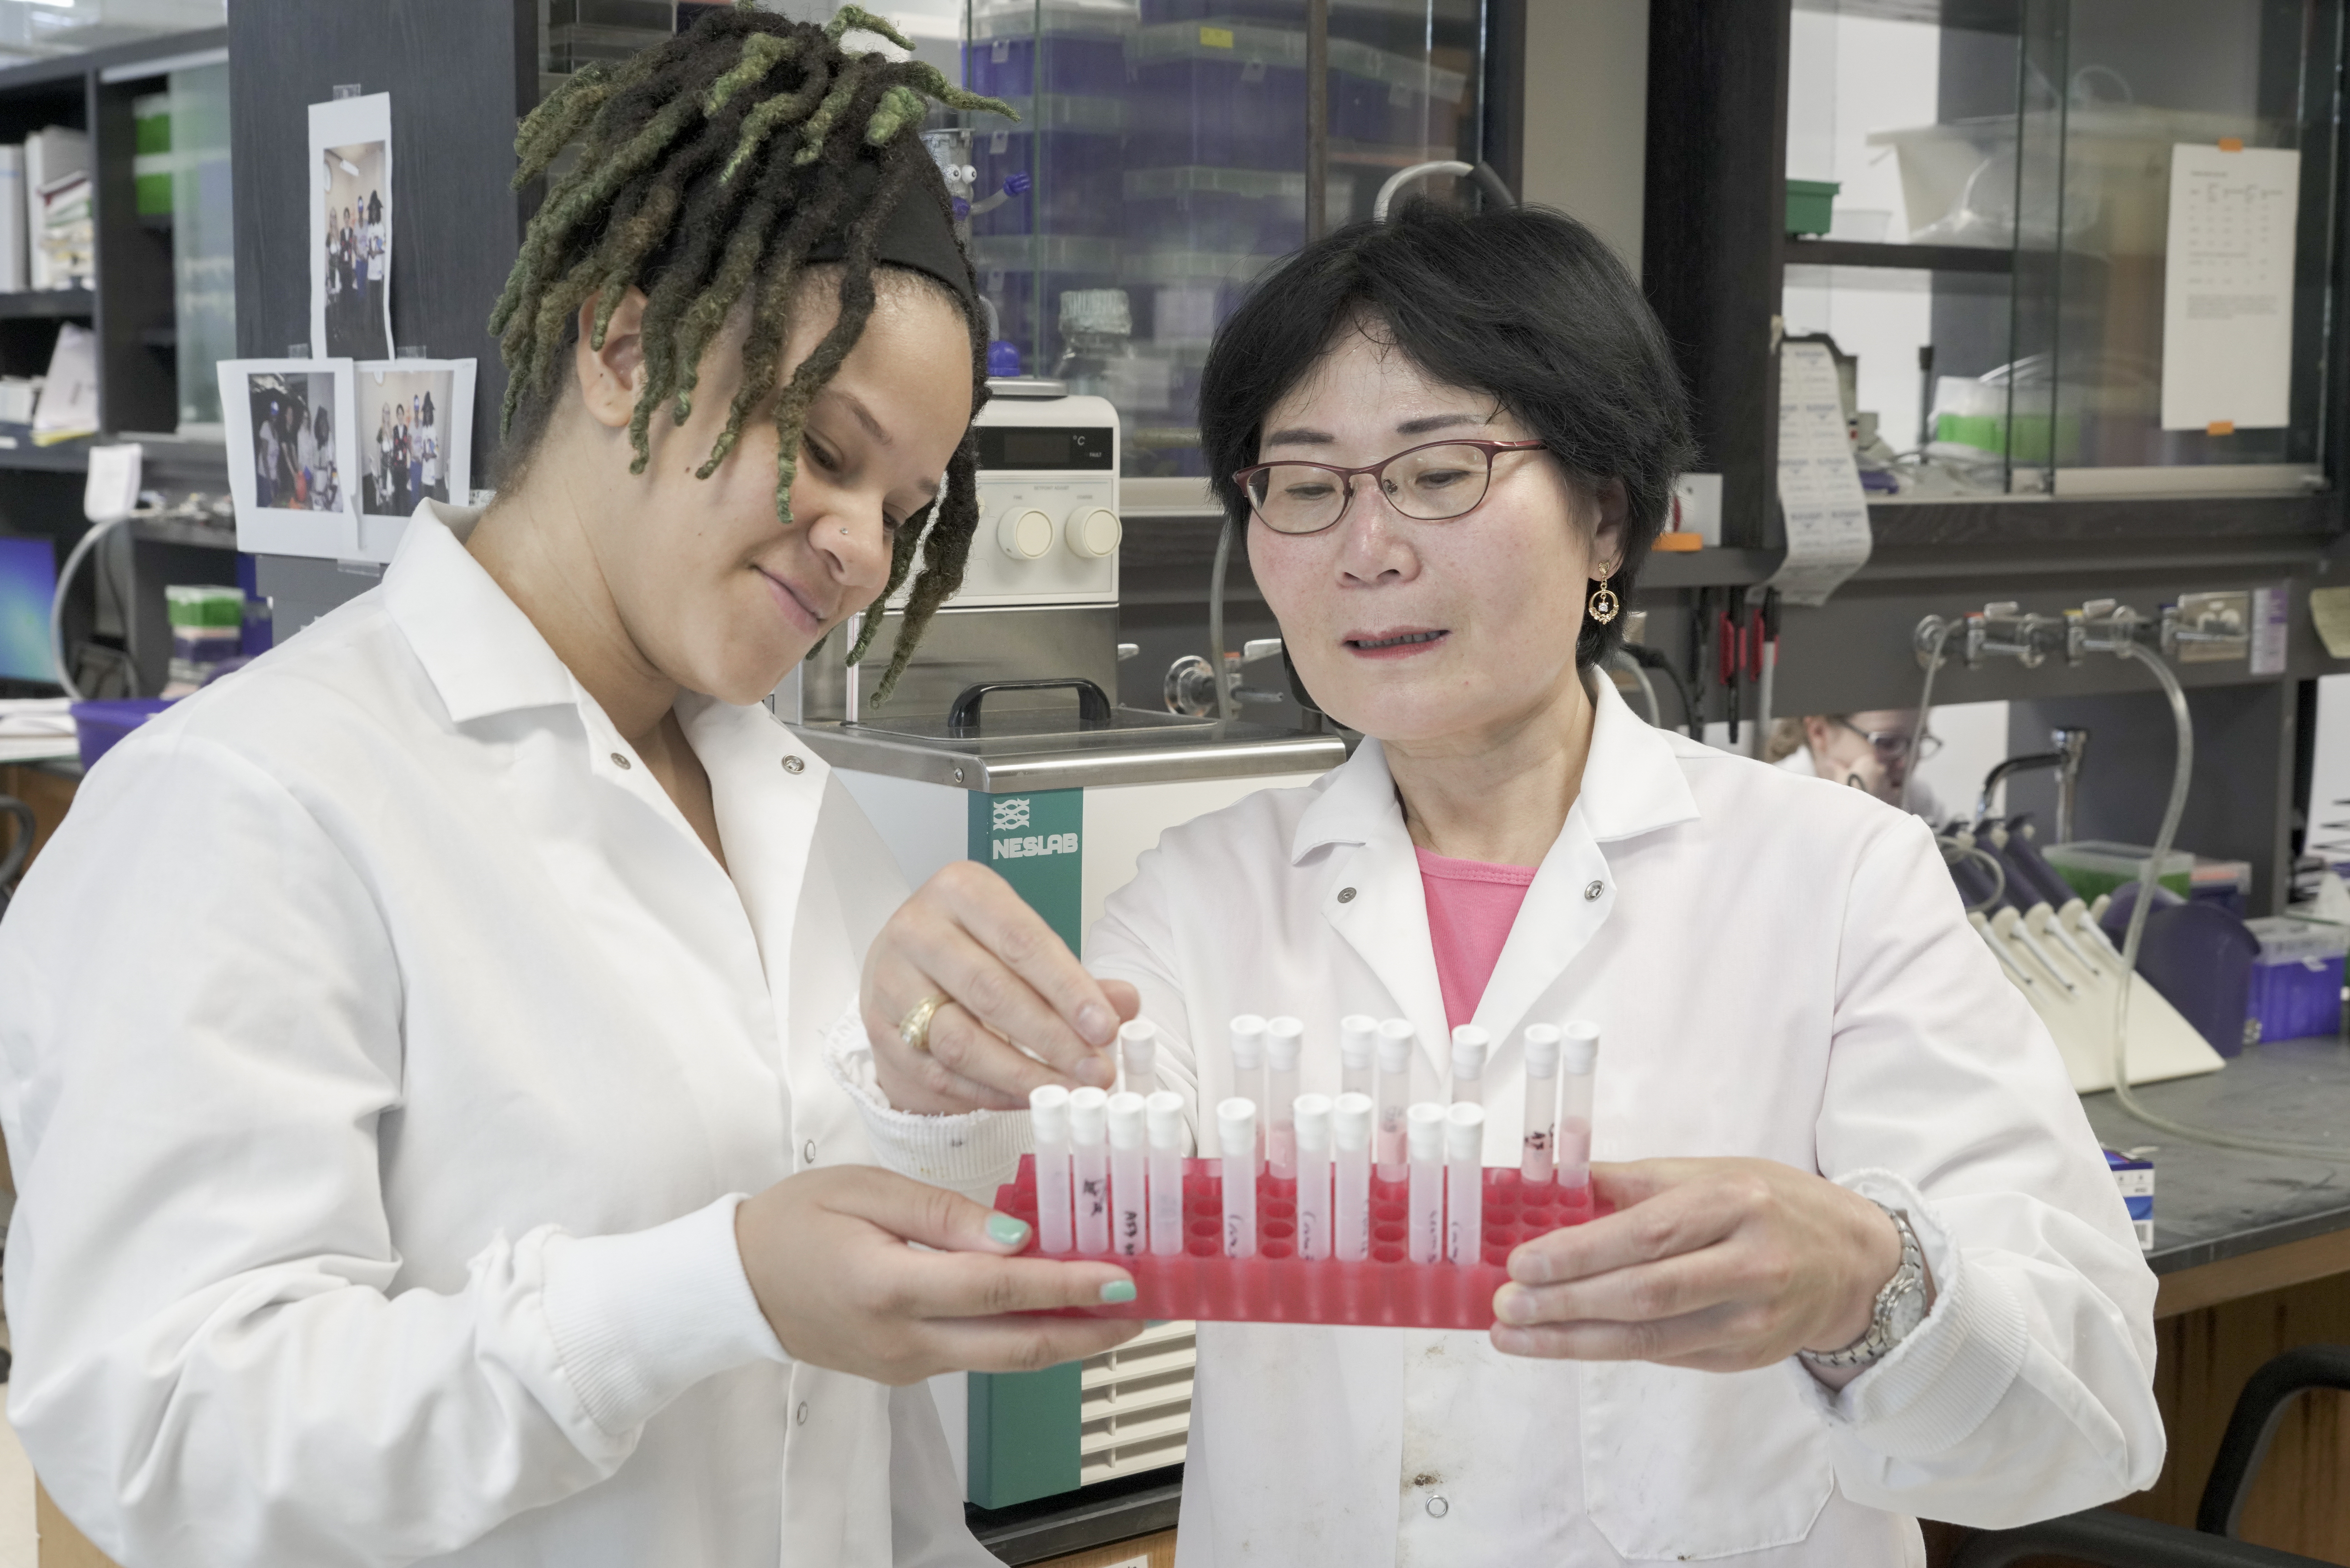 Anya Byrd with advisor Dr. Sook Chung